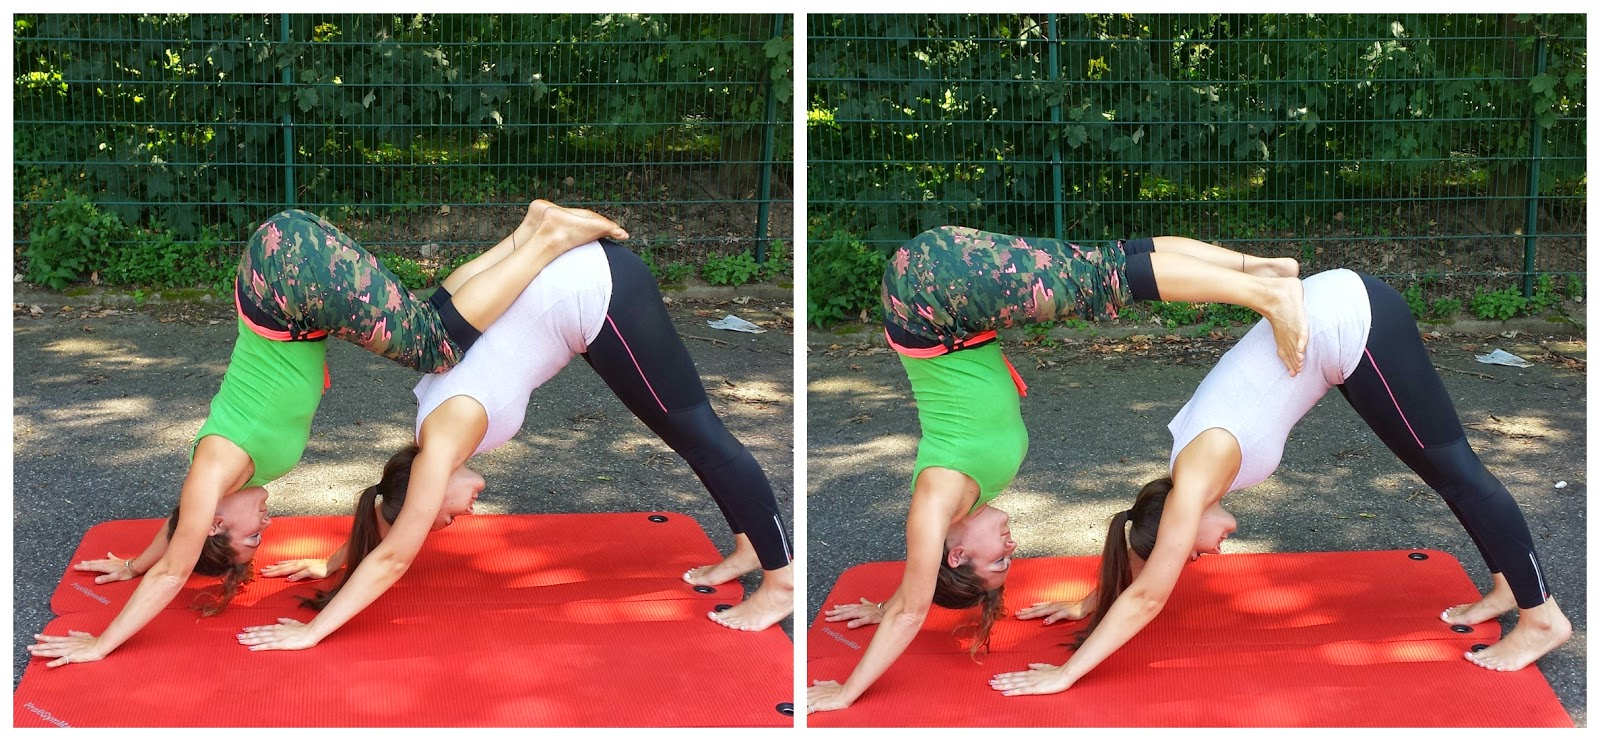 Beauties Lift Weights: Yoga Sessions & Acro Yoga